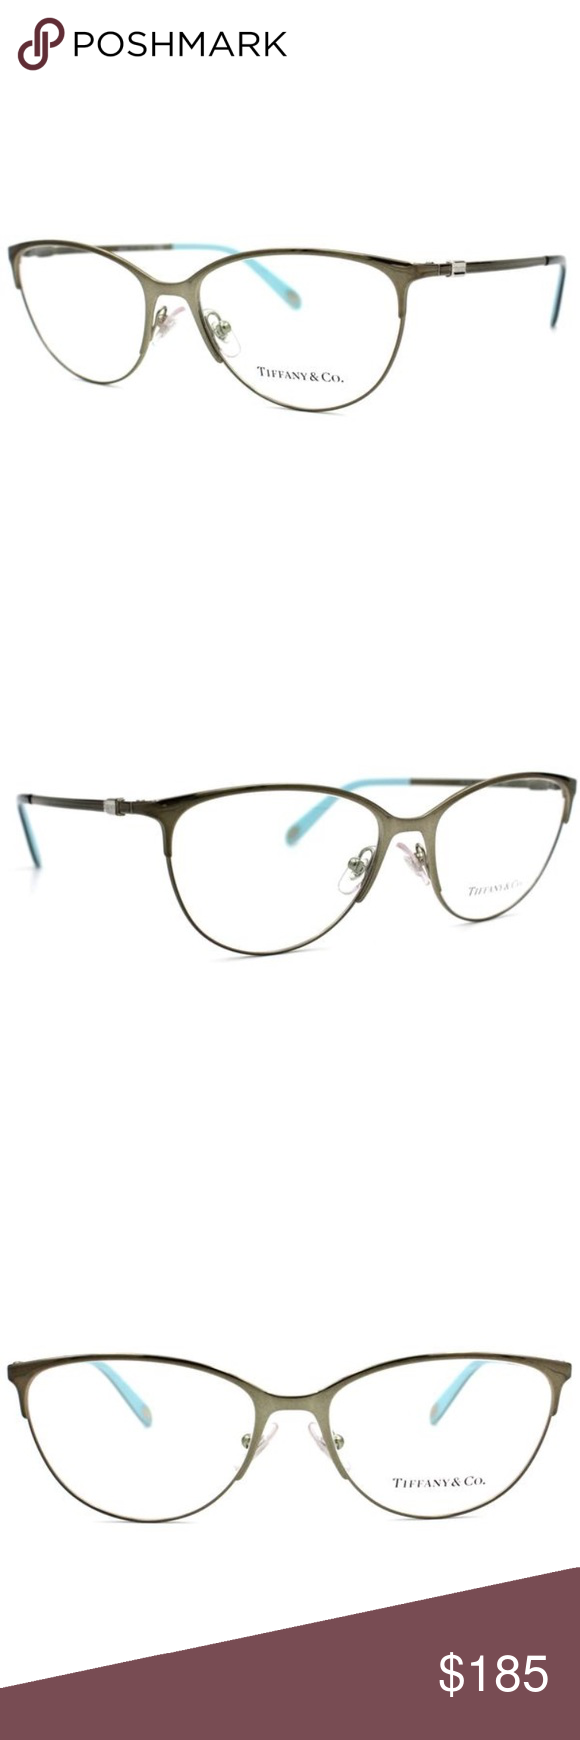 Tiffany & Co Cat Eye Prescription Glasses Frame Tiffany & Co. Cat ...